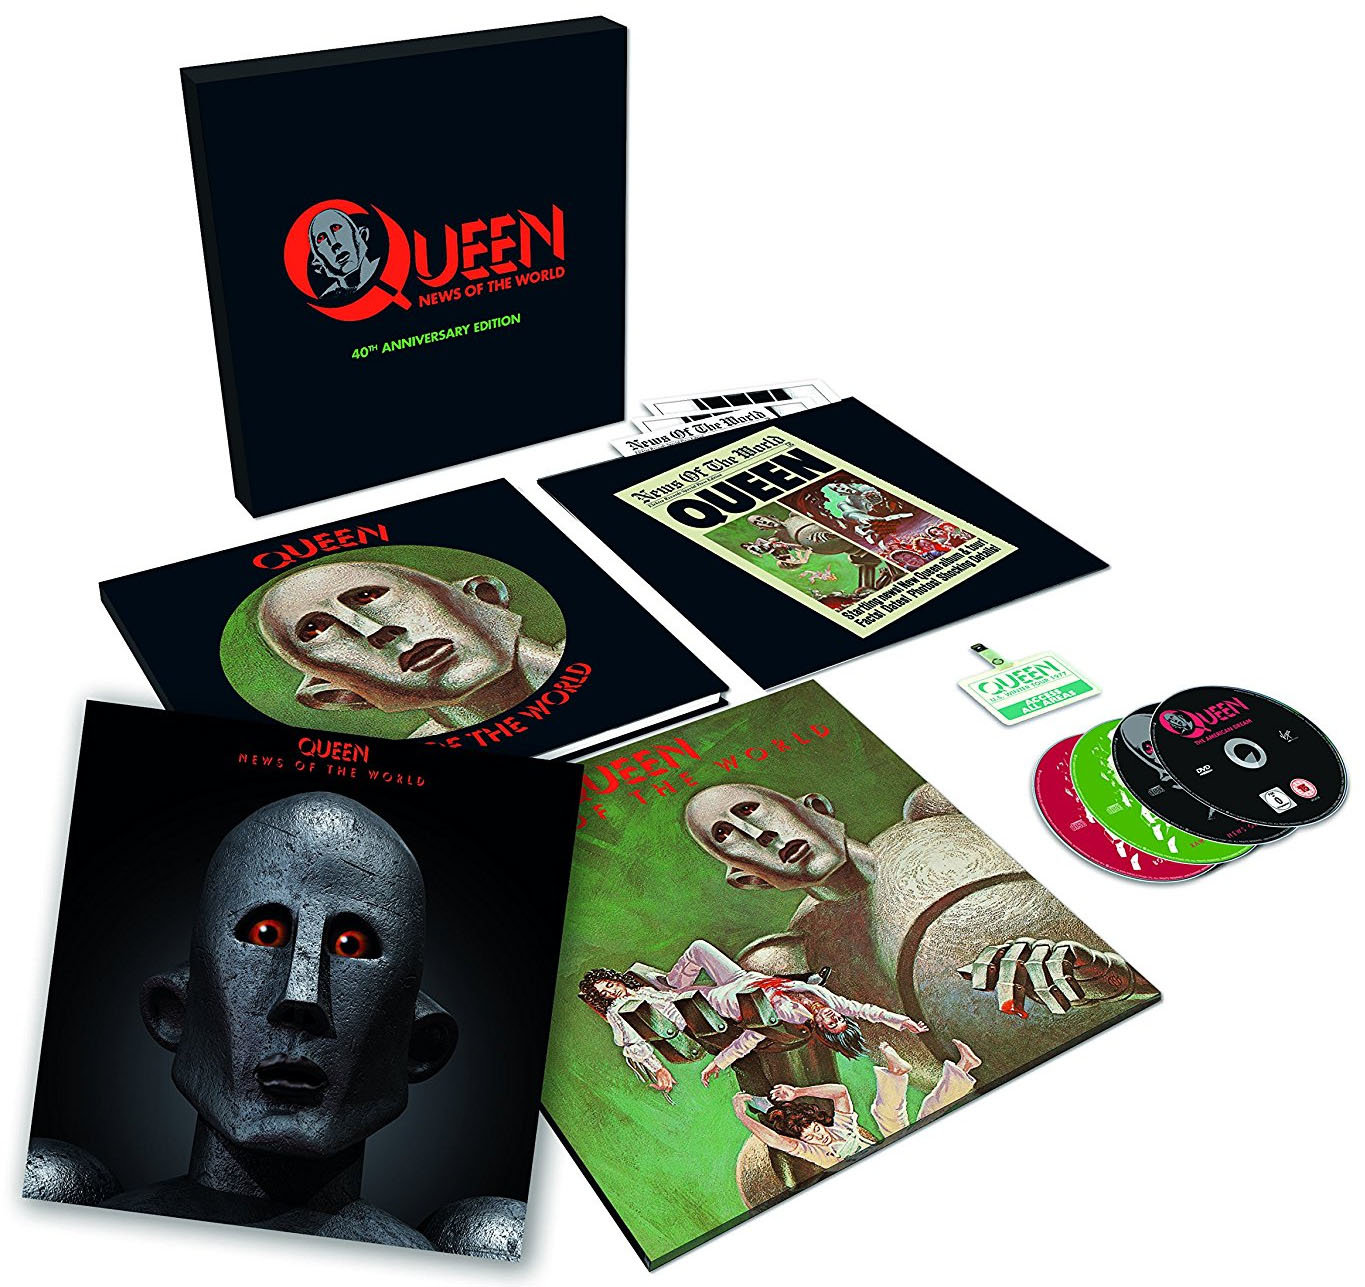 Queen : News Of The World (Super Deluxe Box Set)